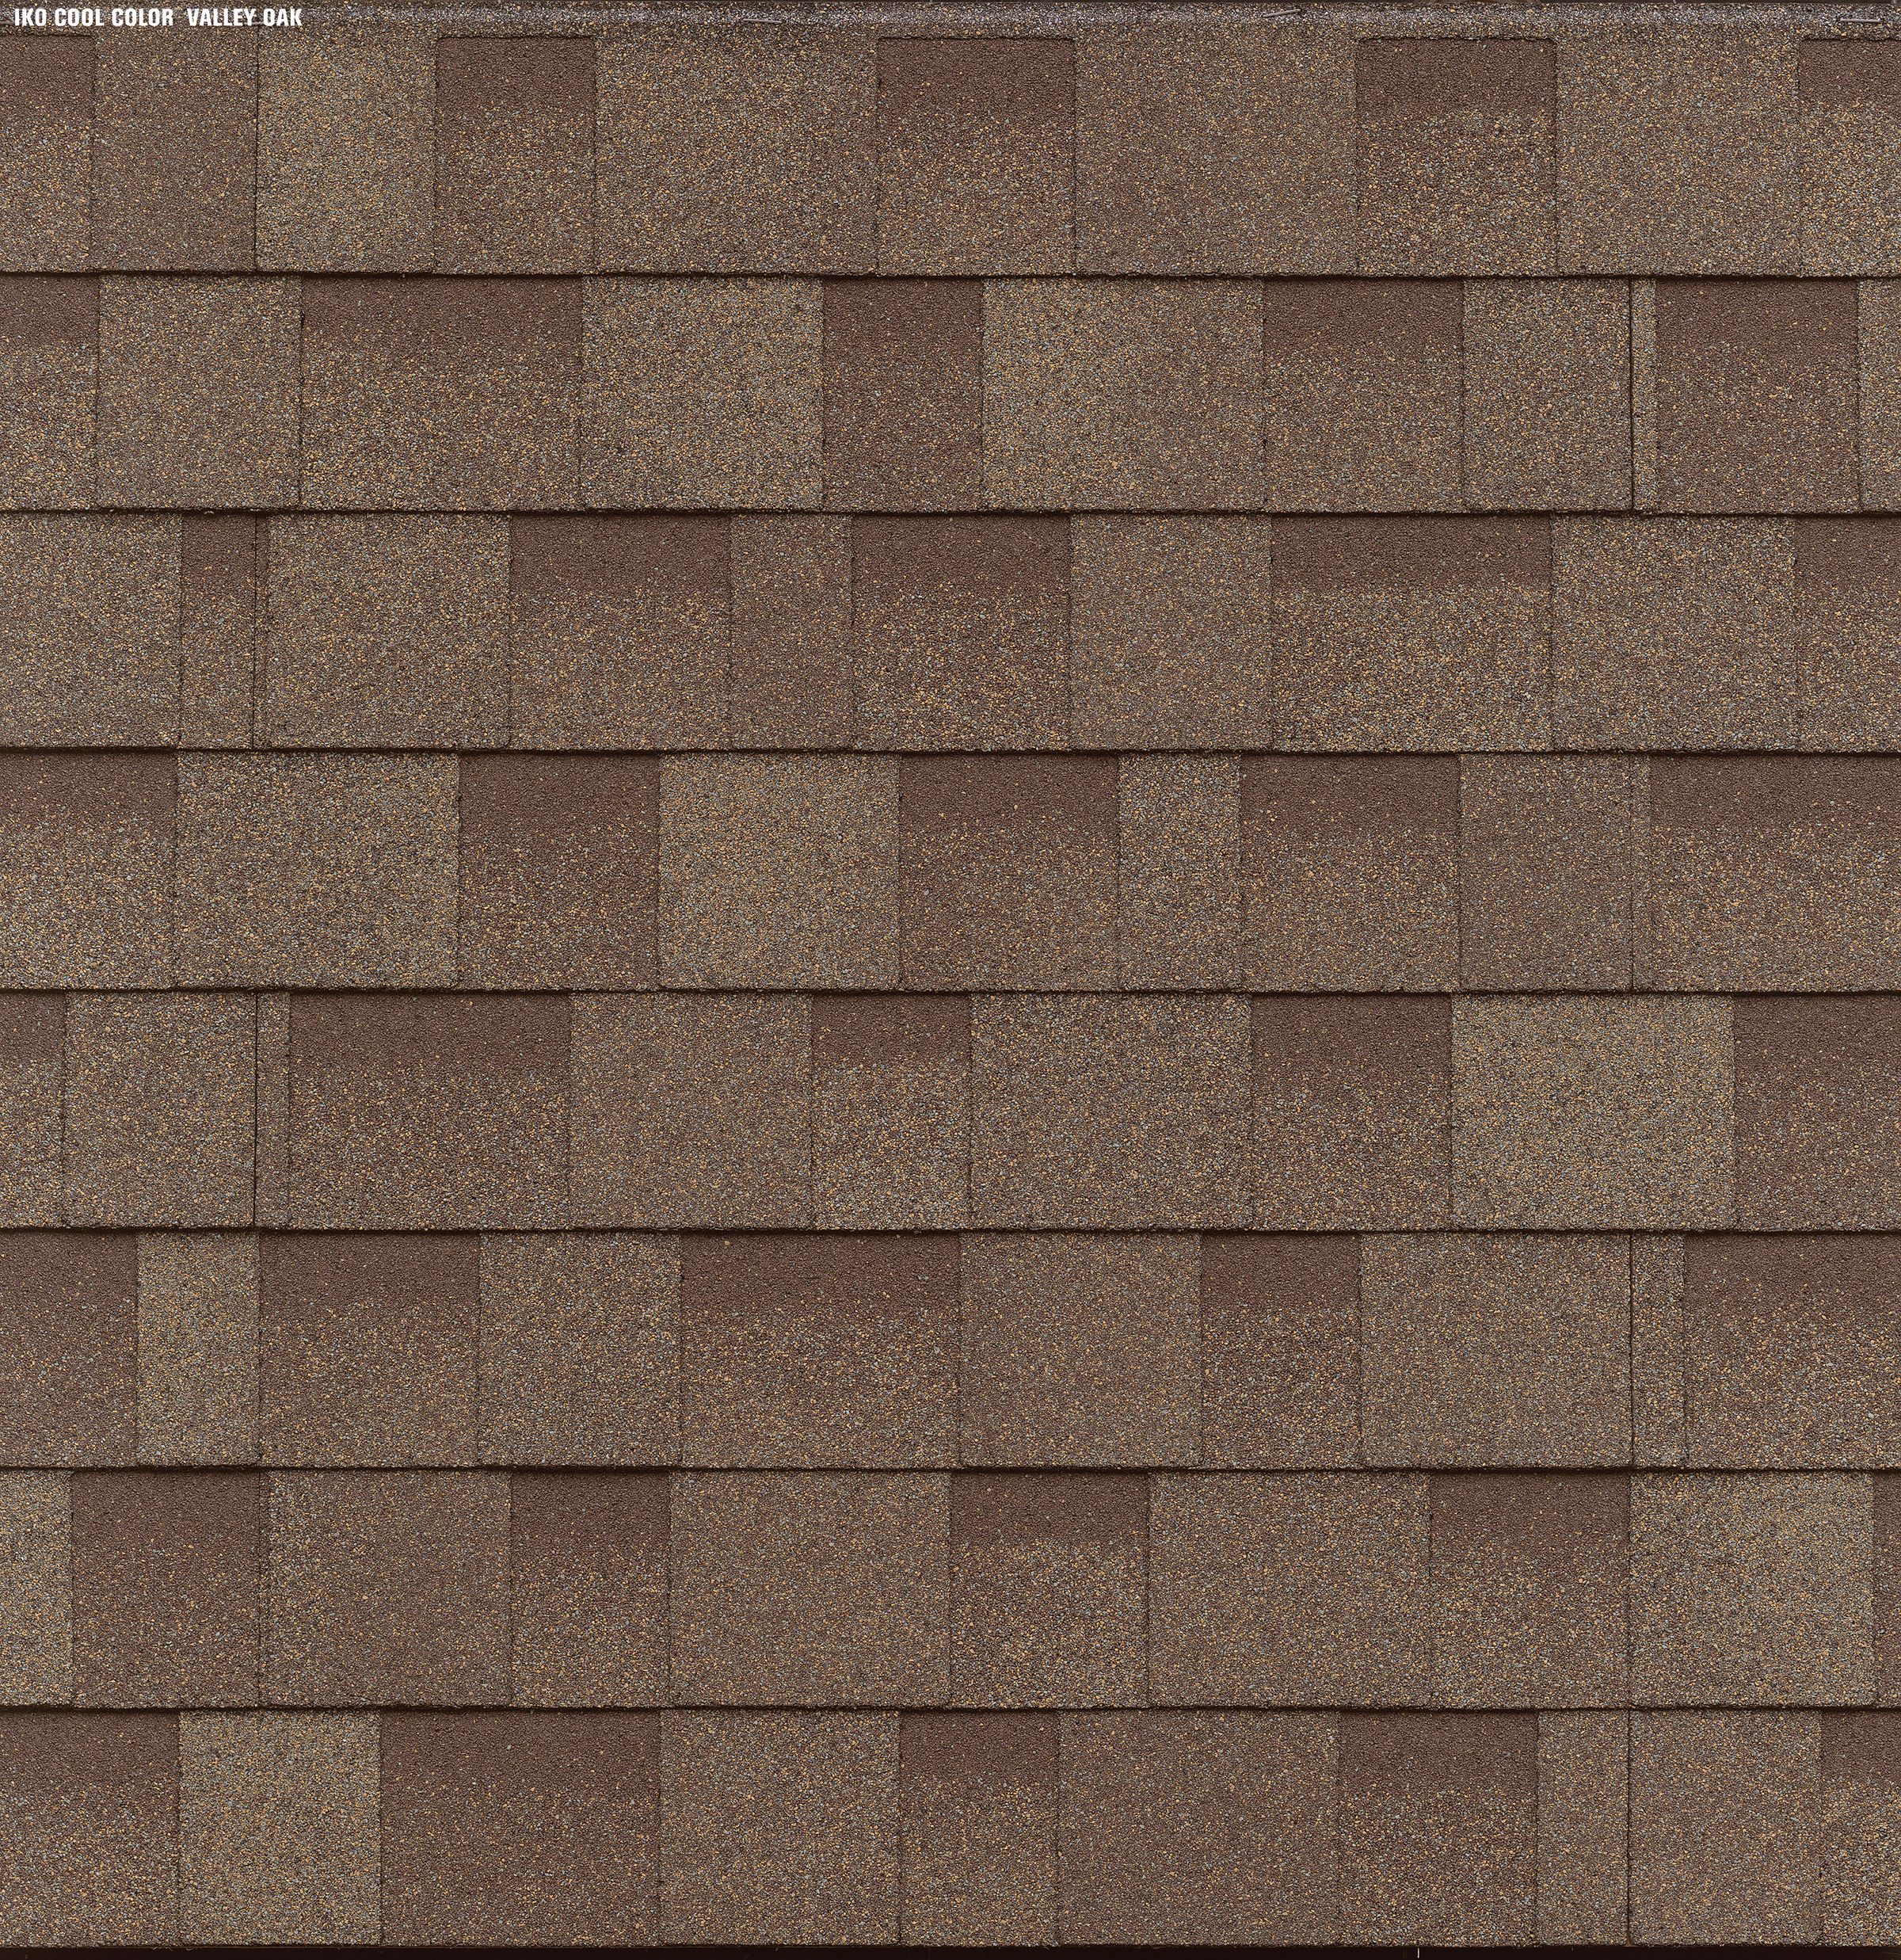 Iko Cambridge Cool Color Valley Oak Swatch Cool Roof Shingling Residential Roofing Shingles